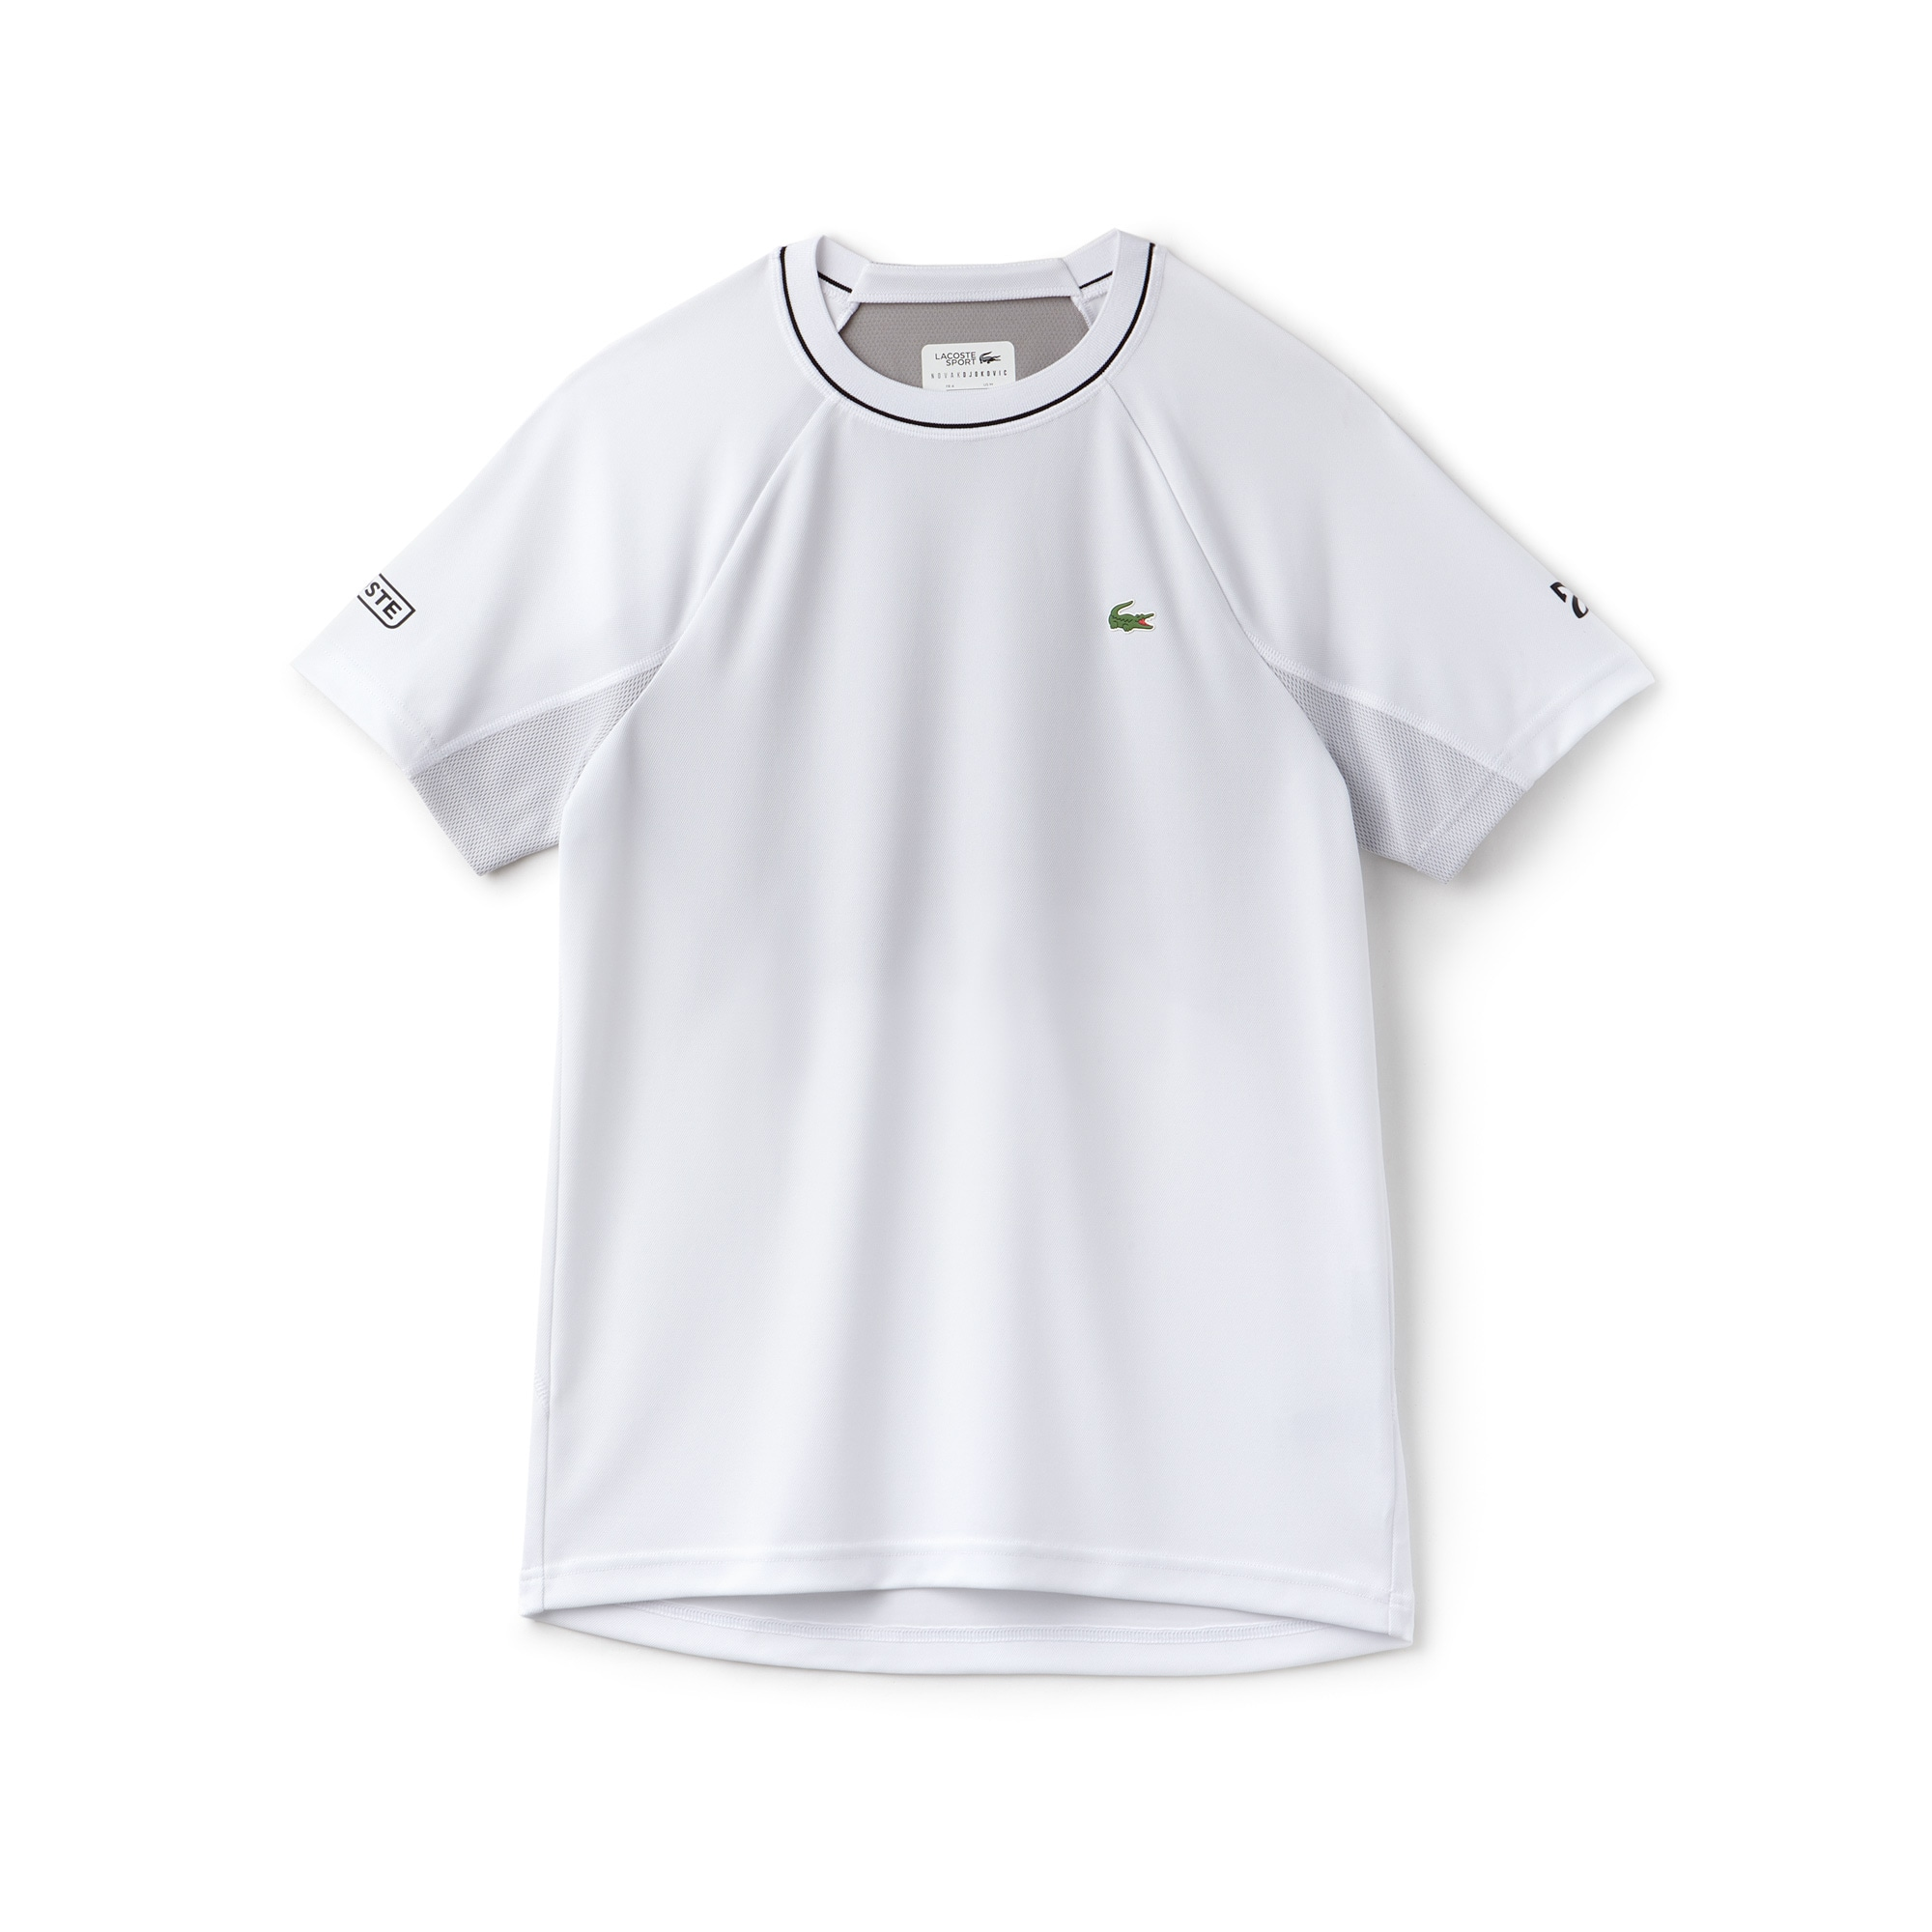 Men's Lacoste SPORT NOVAK DJOKOVIC SUPPORT WITH STYLE COLLECTION Crew Neck Technical Piqué And Mesh T-shirt